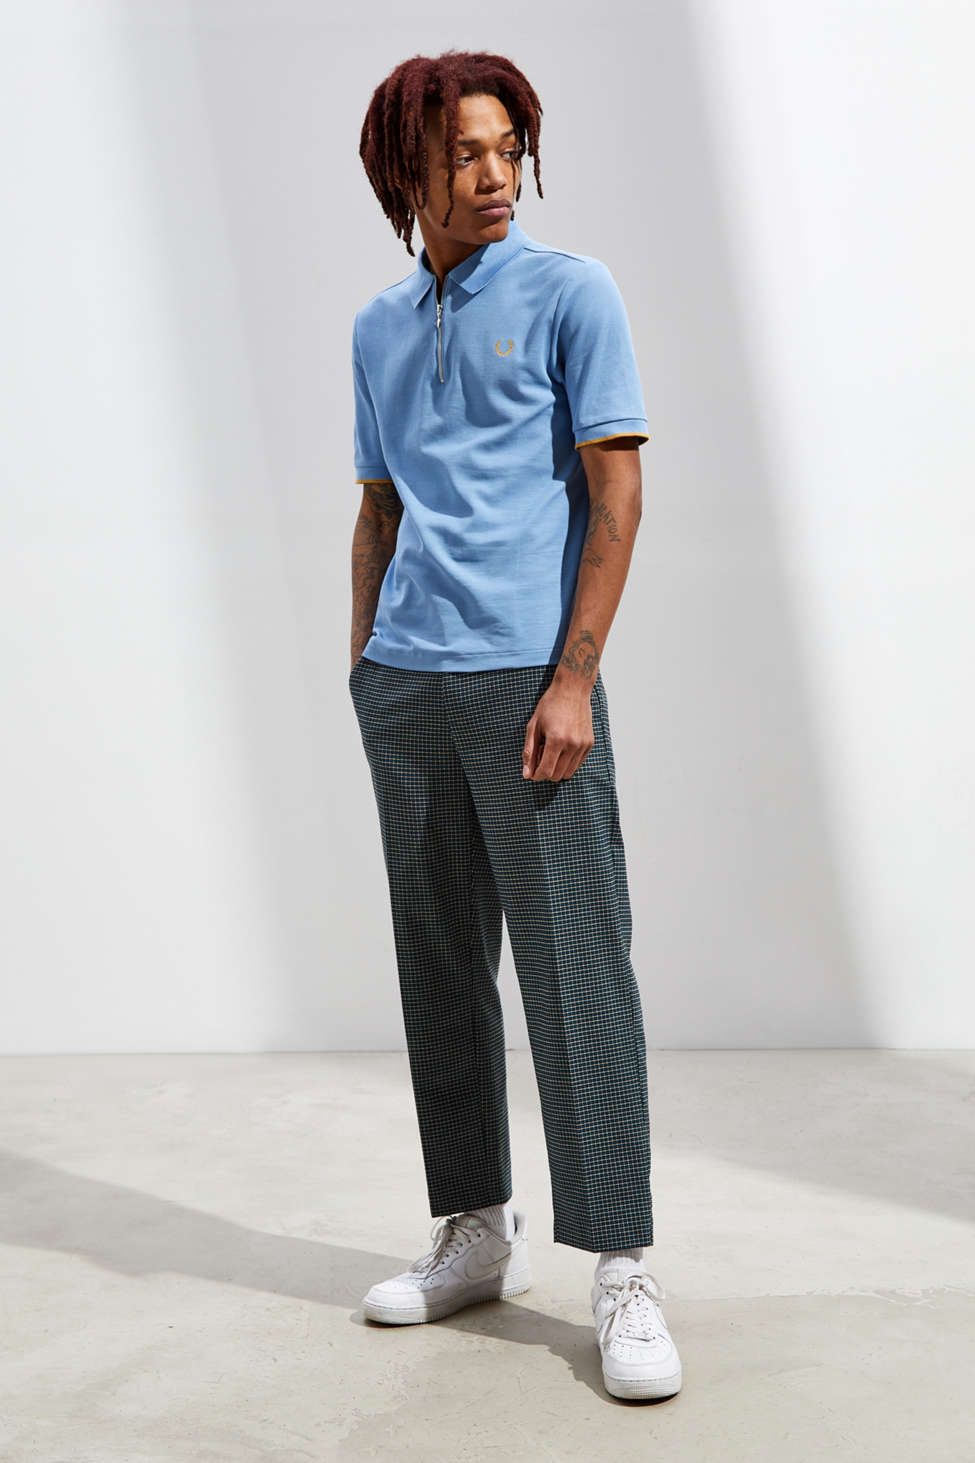 Fred Perry Miles Kane Zip Placket Pique Knit Polo Shirt by Fred Perry